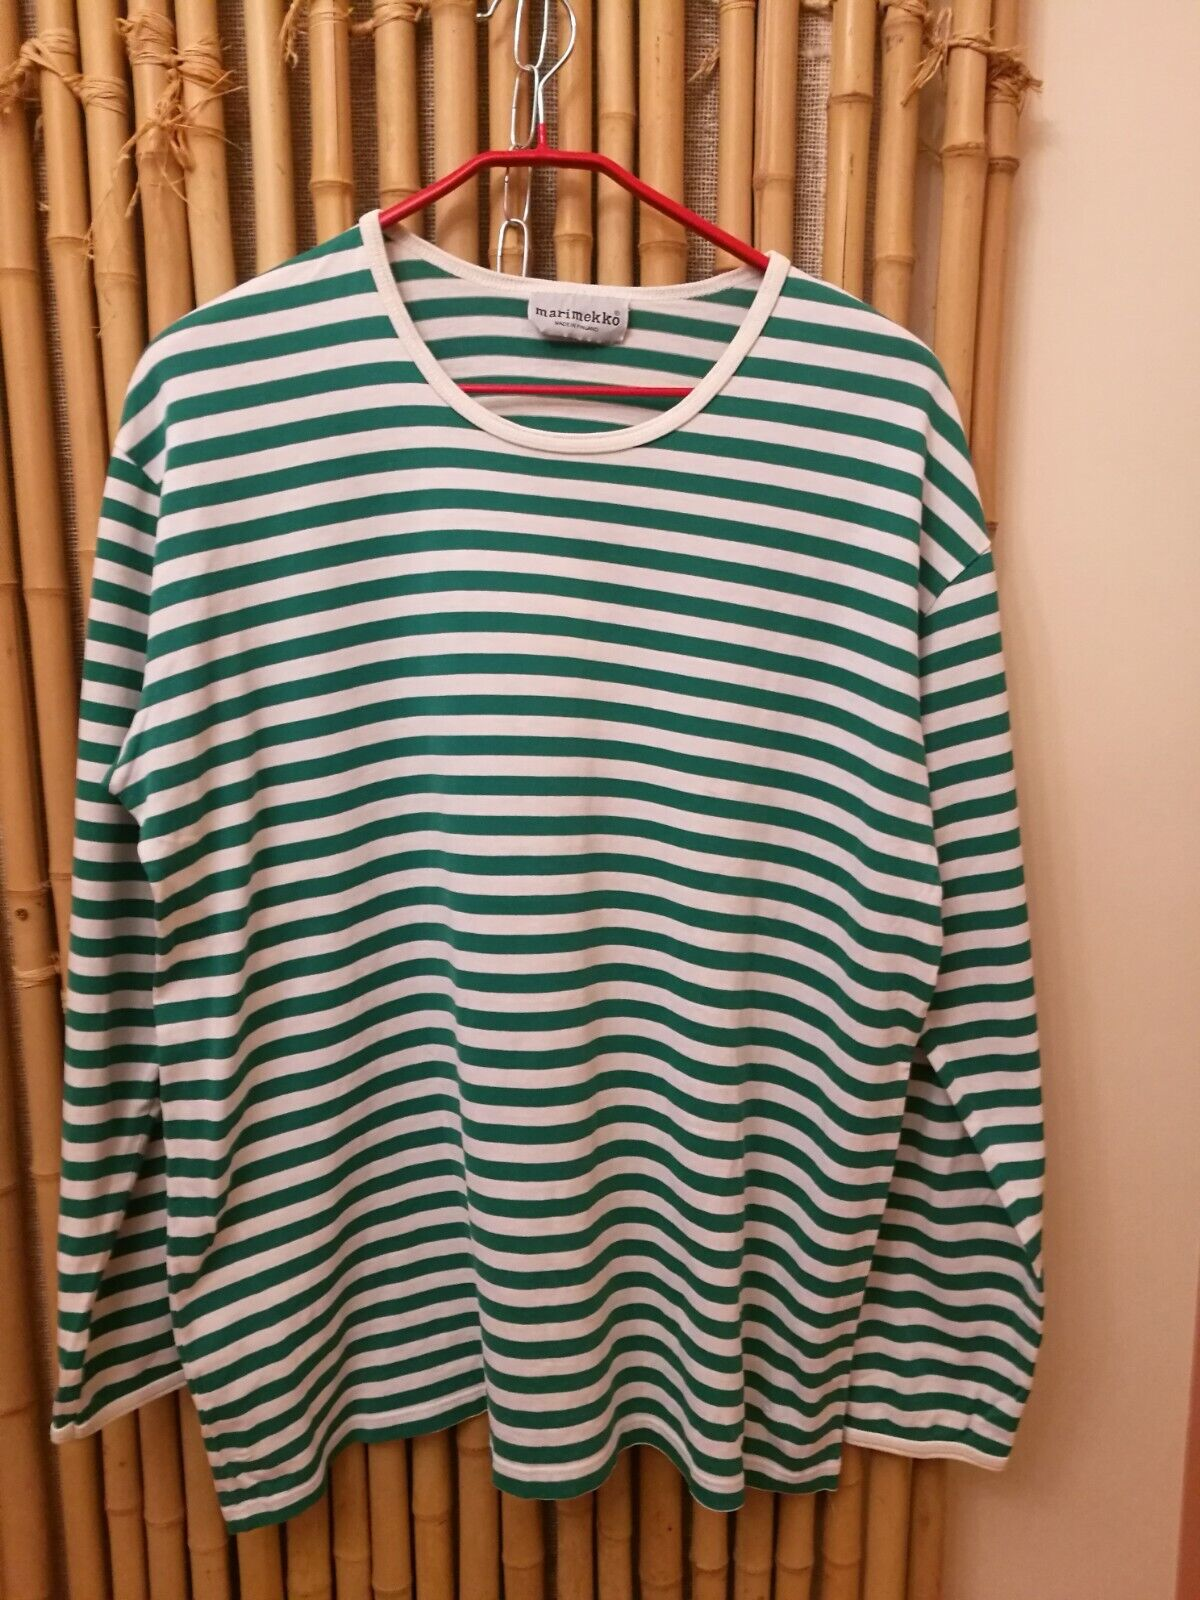 Women t-shirt Marimekko size XL 100% cotton made in Finland